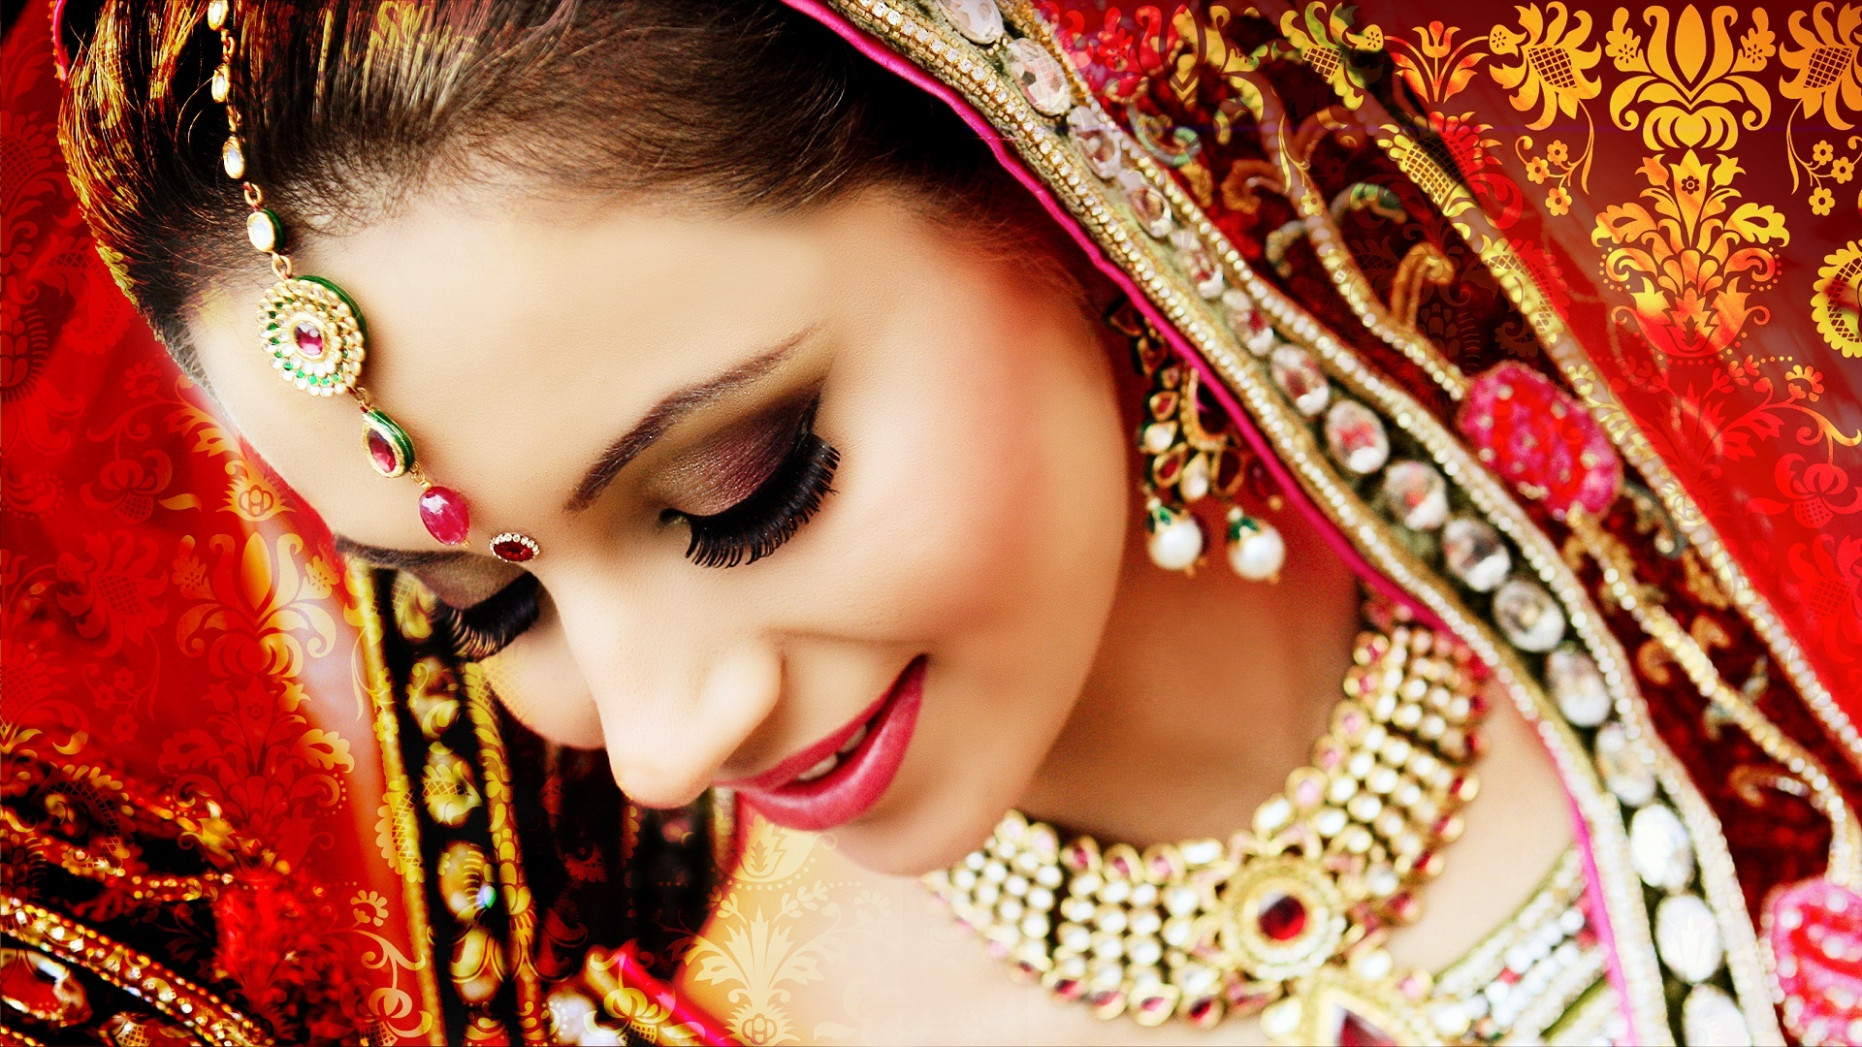 Indian bride beautiful face wallpapers - Download Hd ...